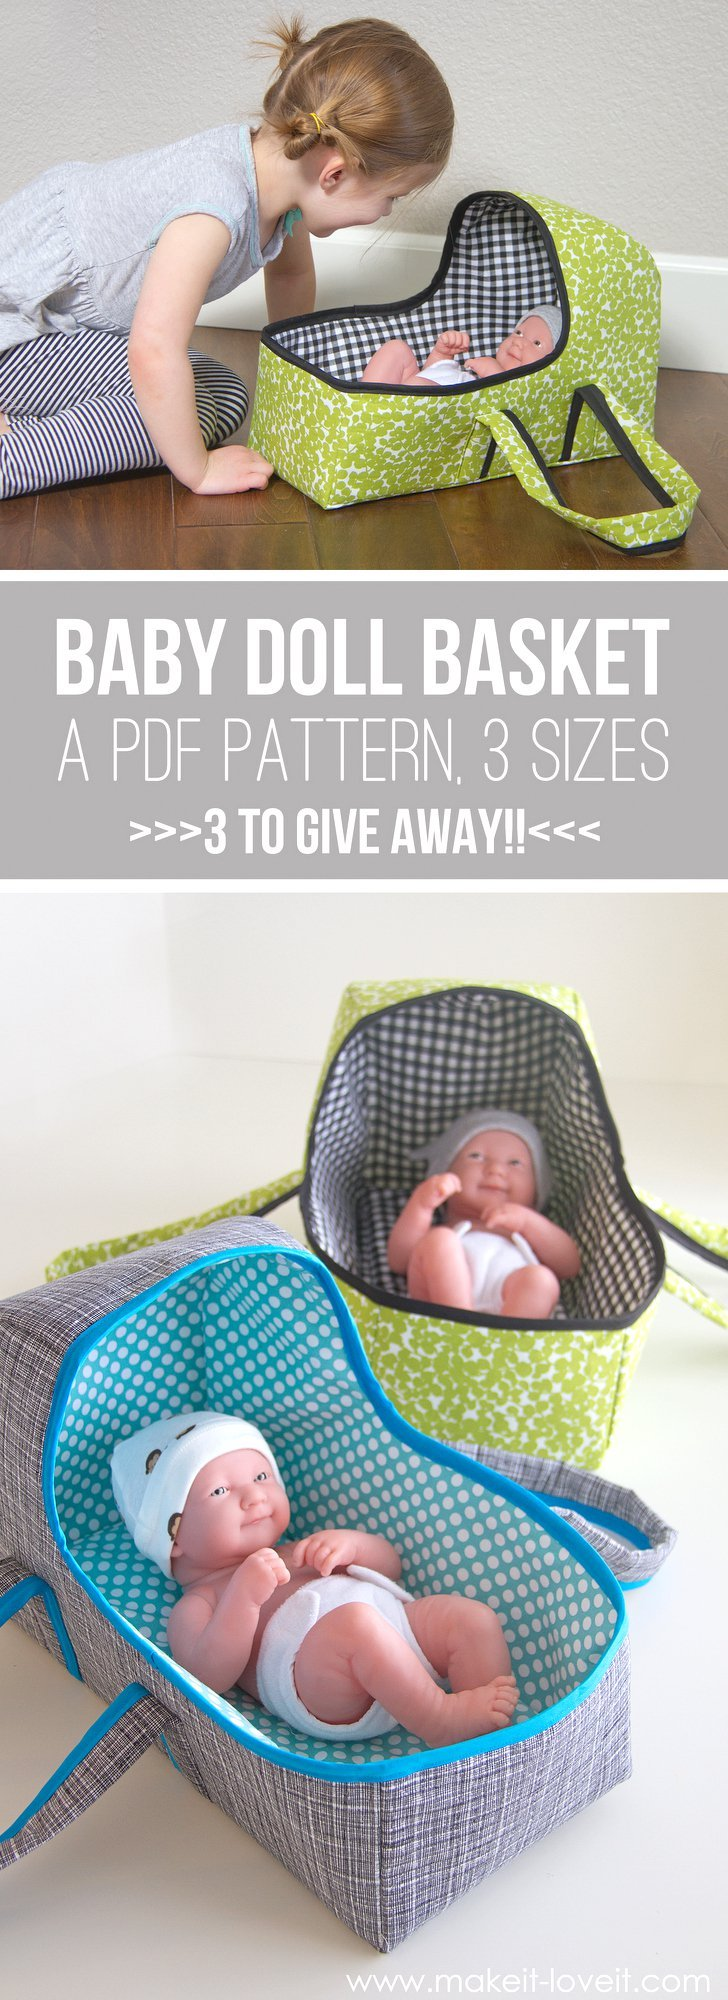 fabric-baby-doll-basket-carrier-1